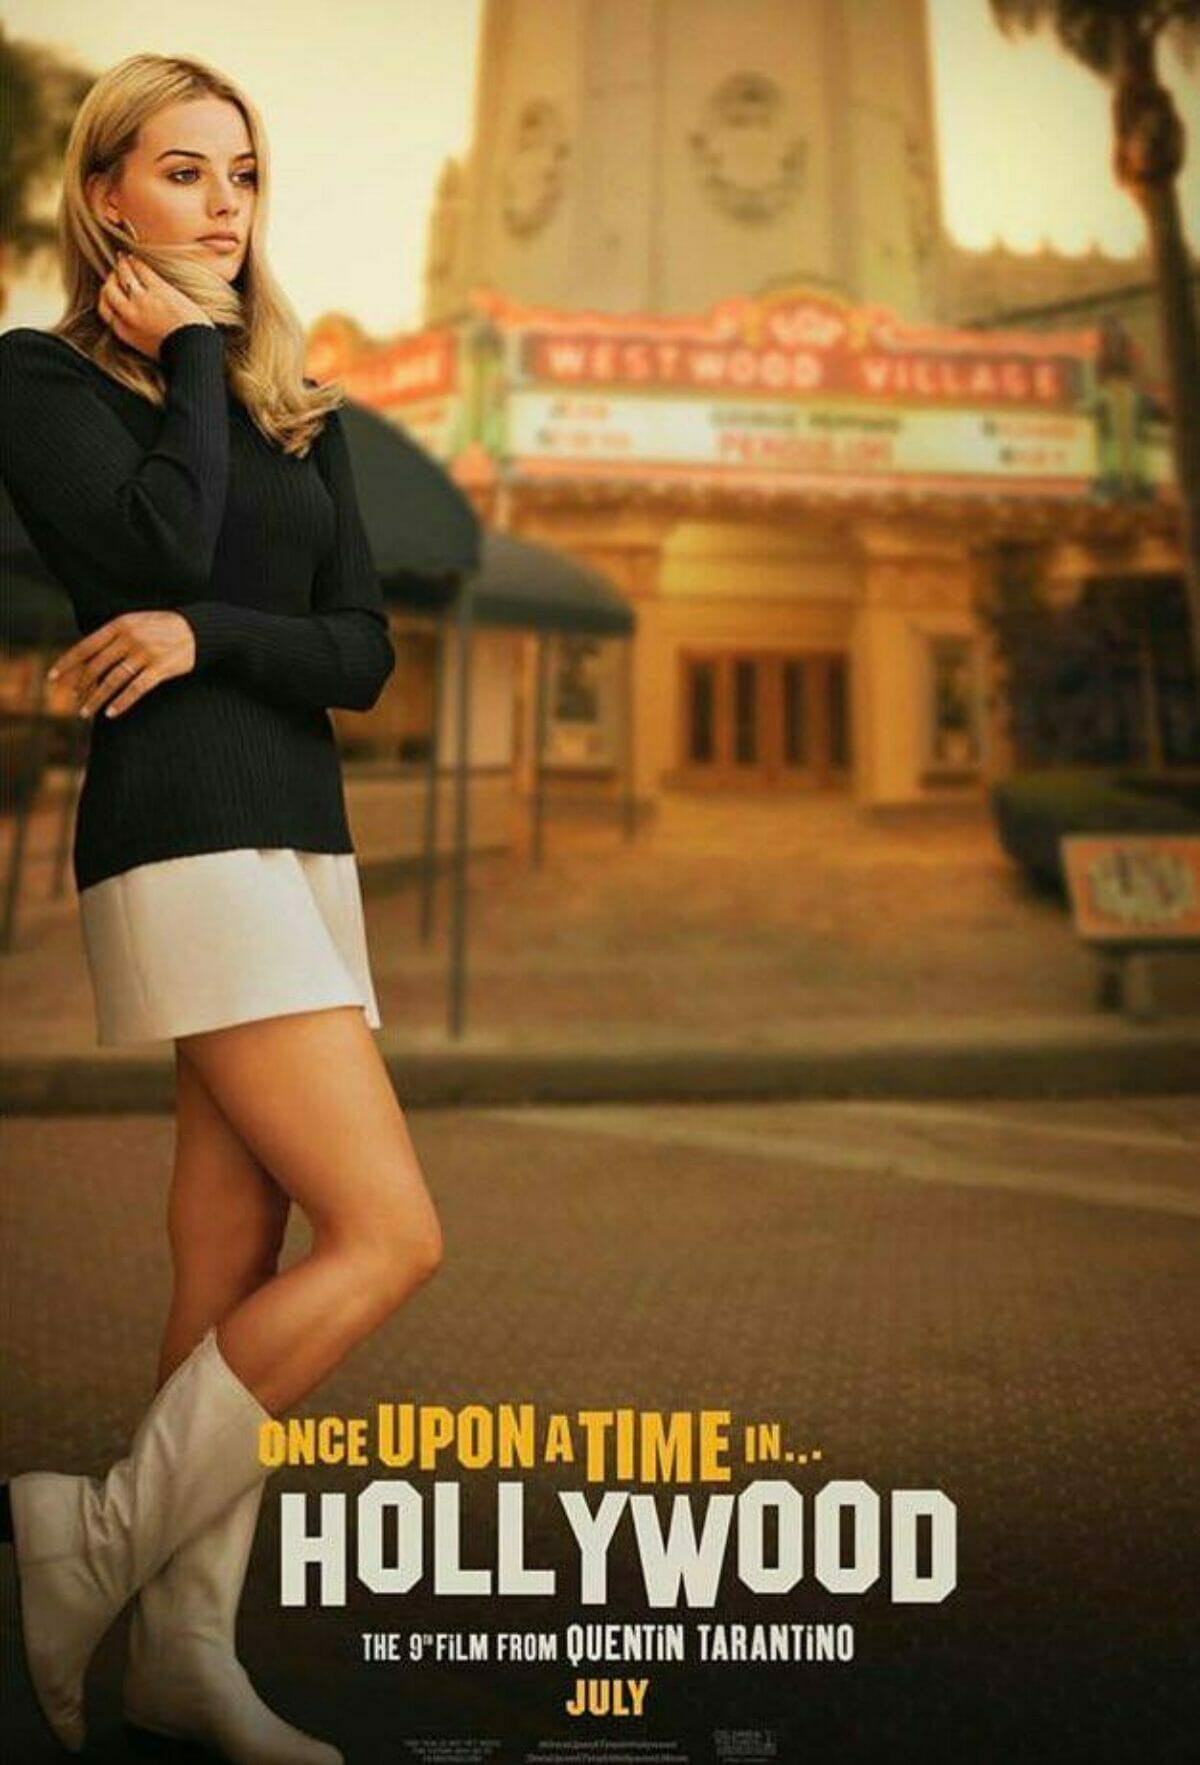 Once-upon-a-tim-in-hollywood-poster-Margot-Robbie